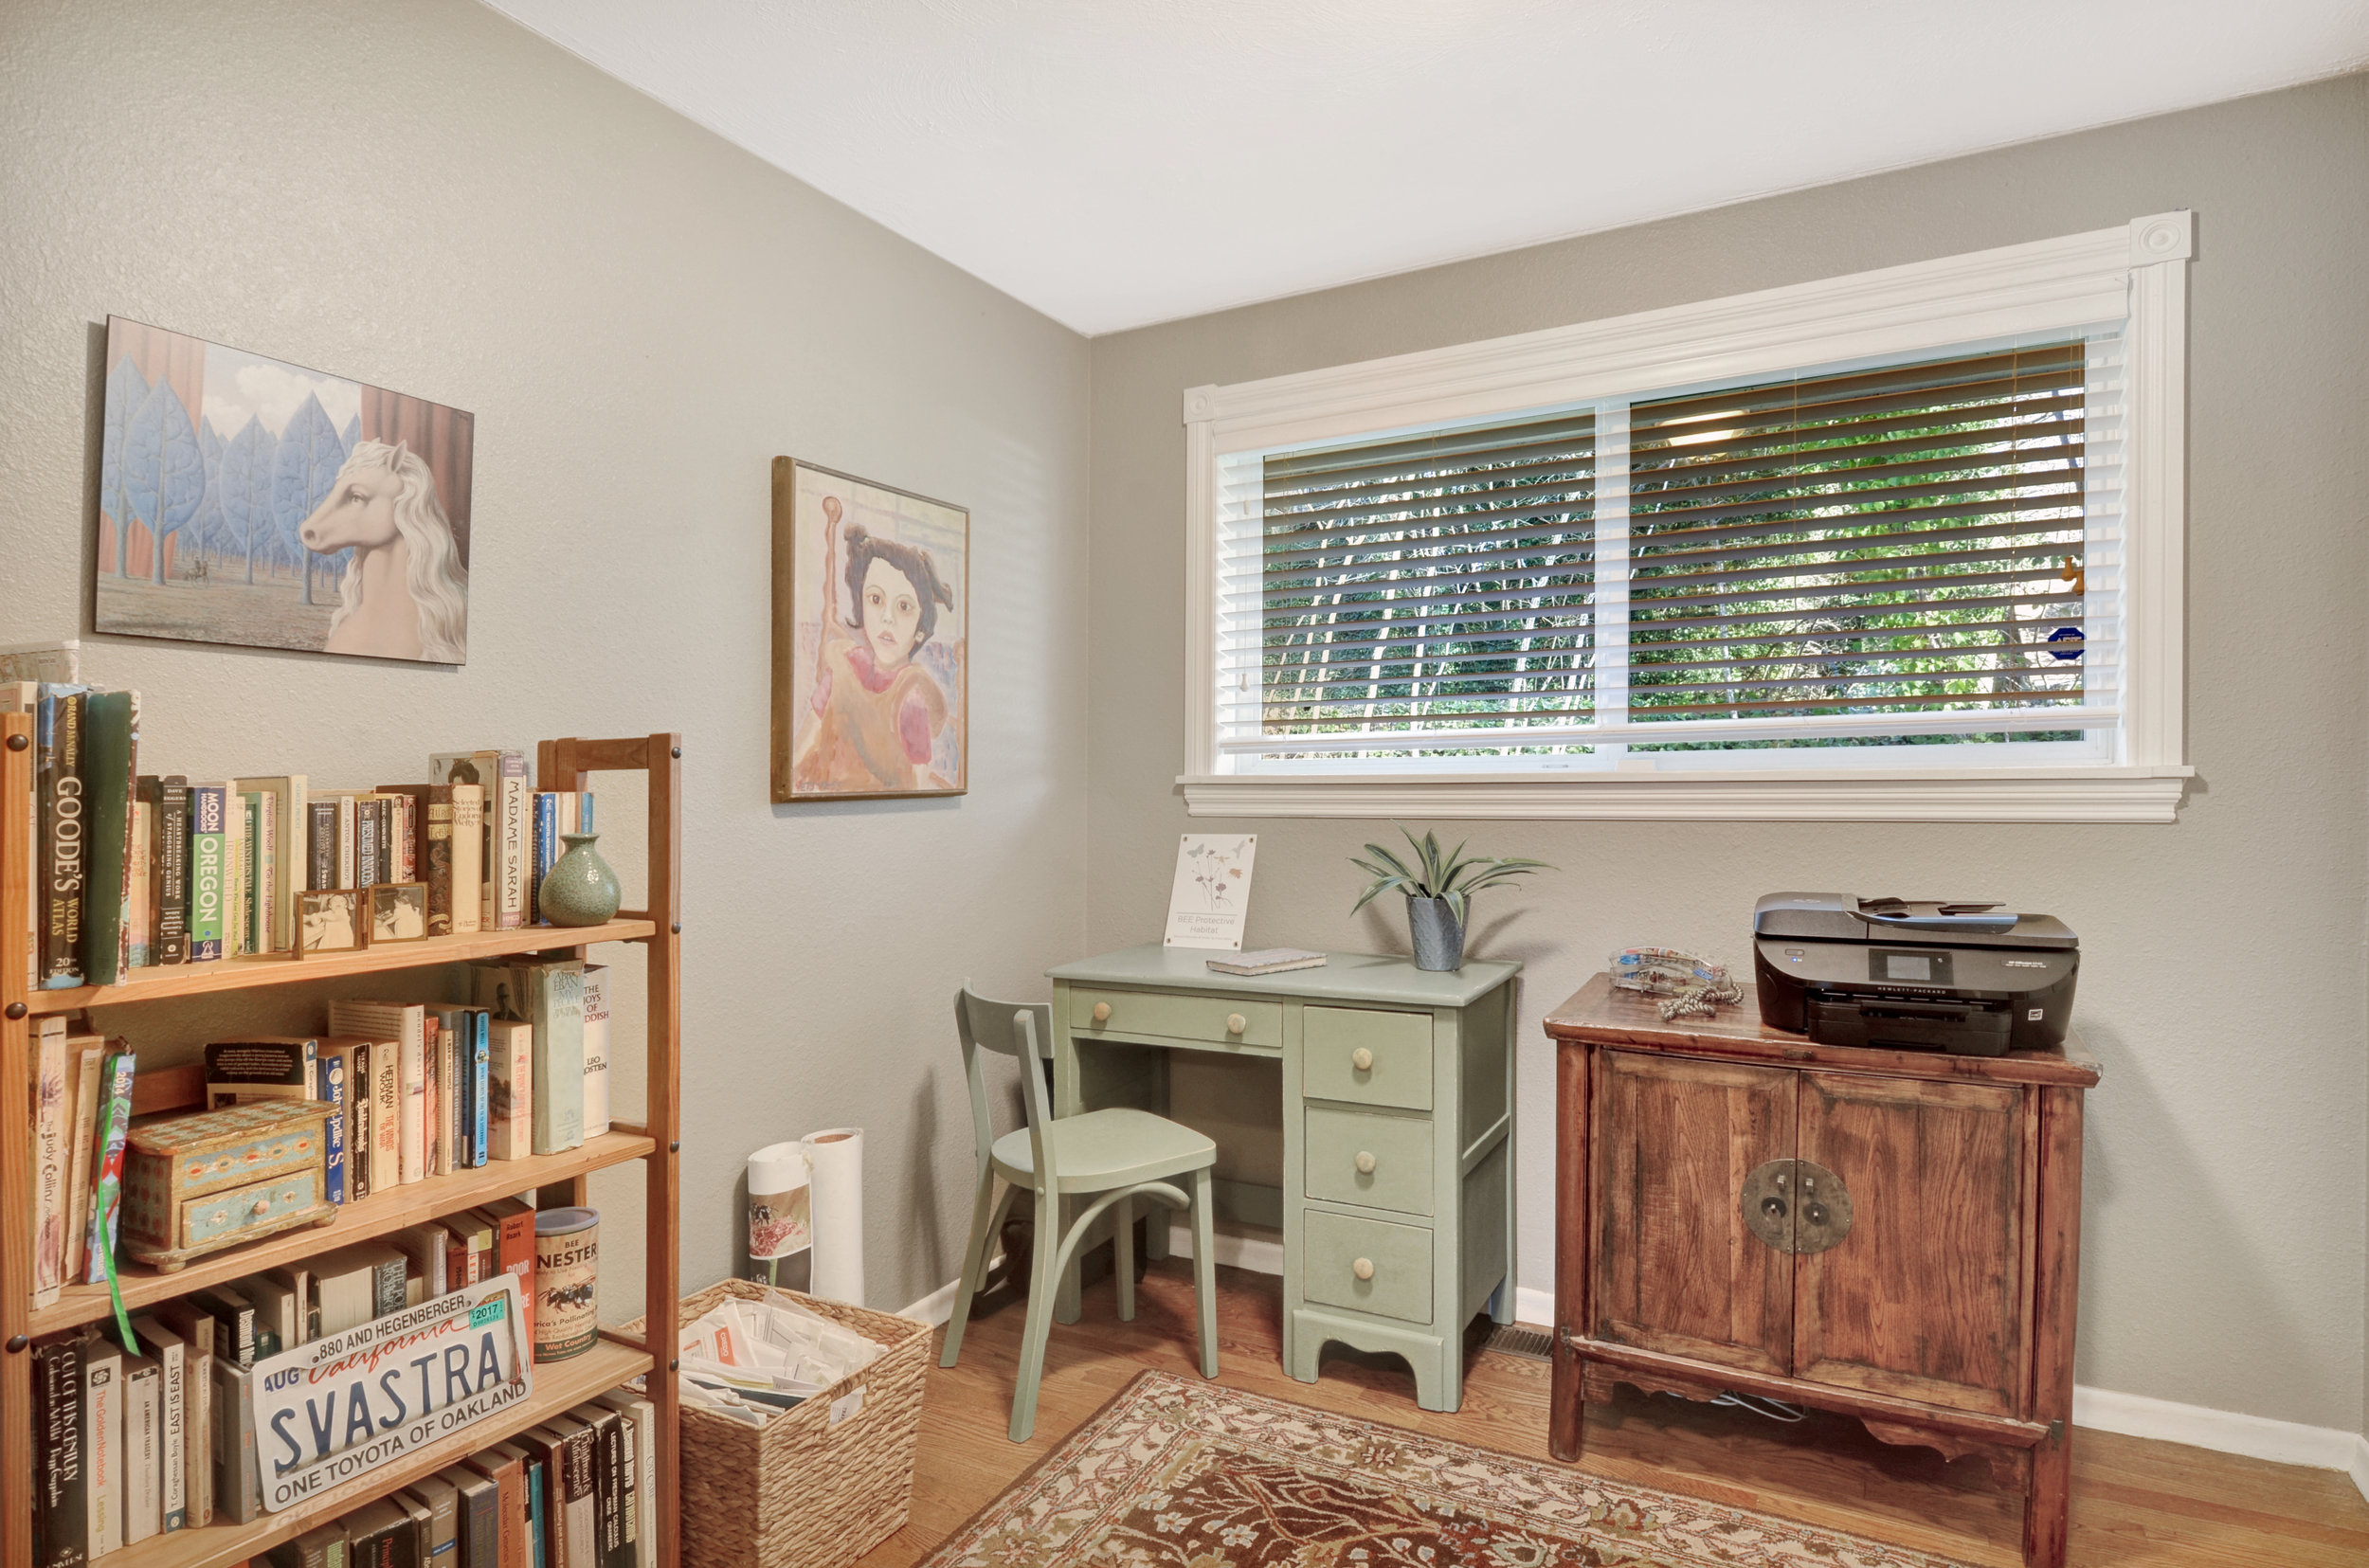 One of 3 bedrooms, this room features original oak hardwood floor and fresh paint as found throughout the home.